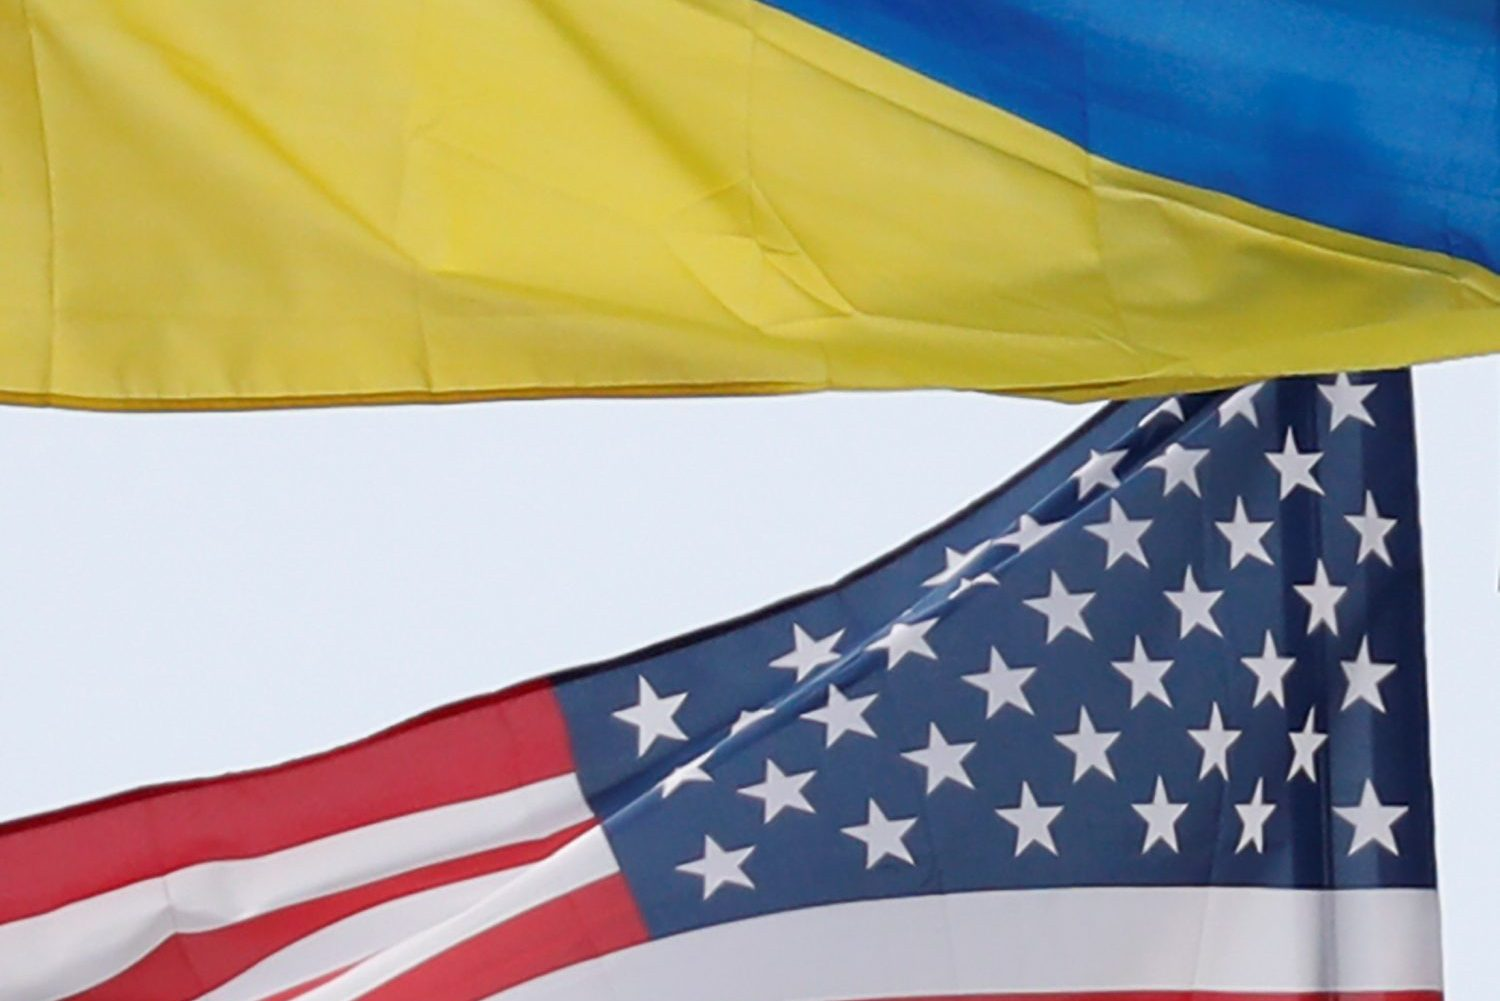 Statement by former US Ambassadors to Ukraine